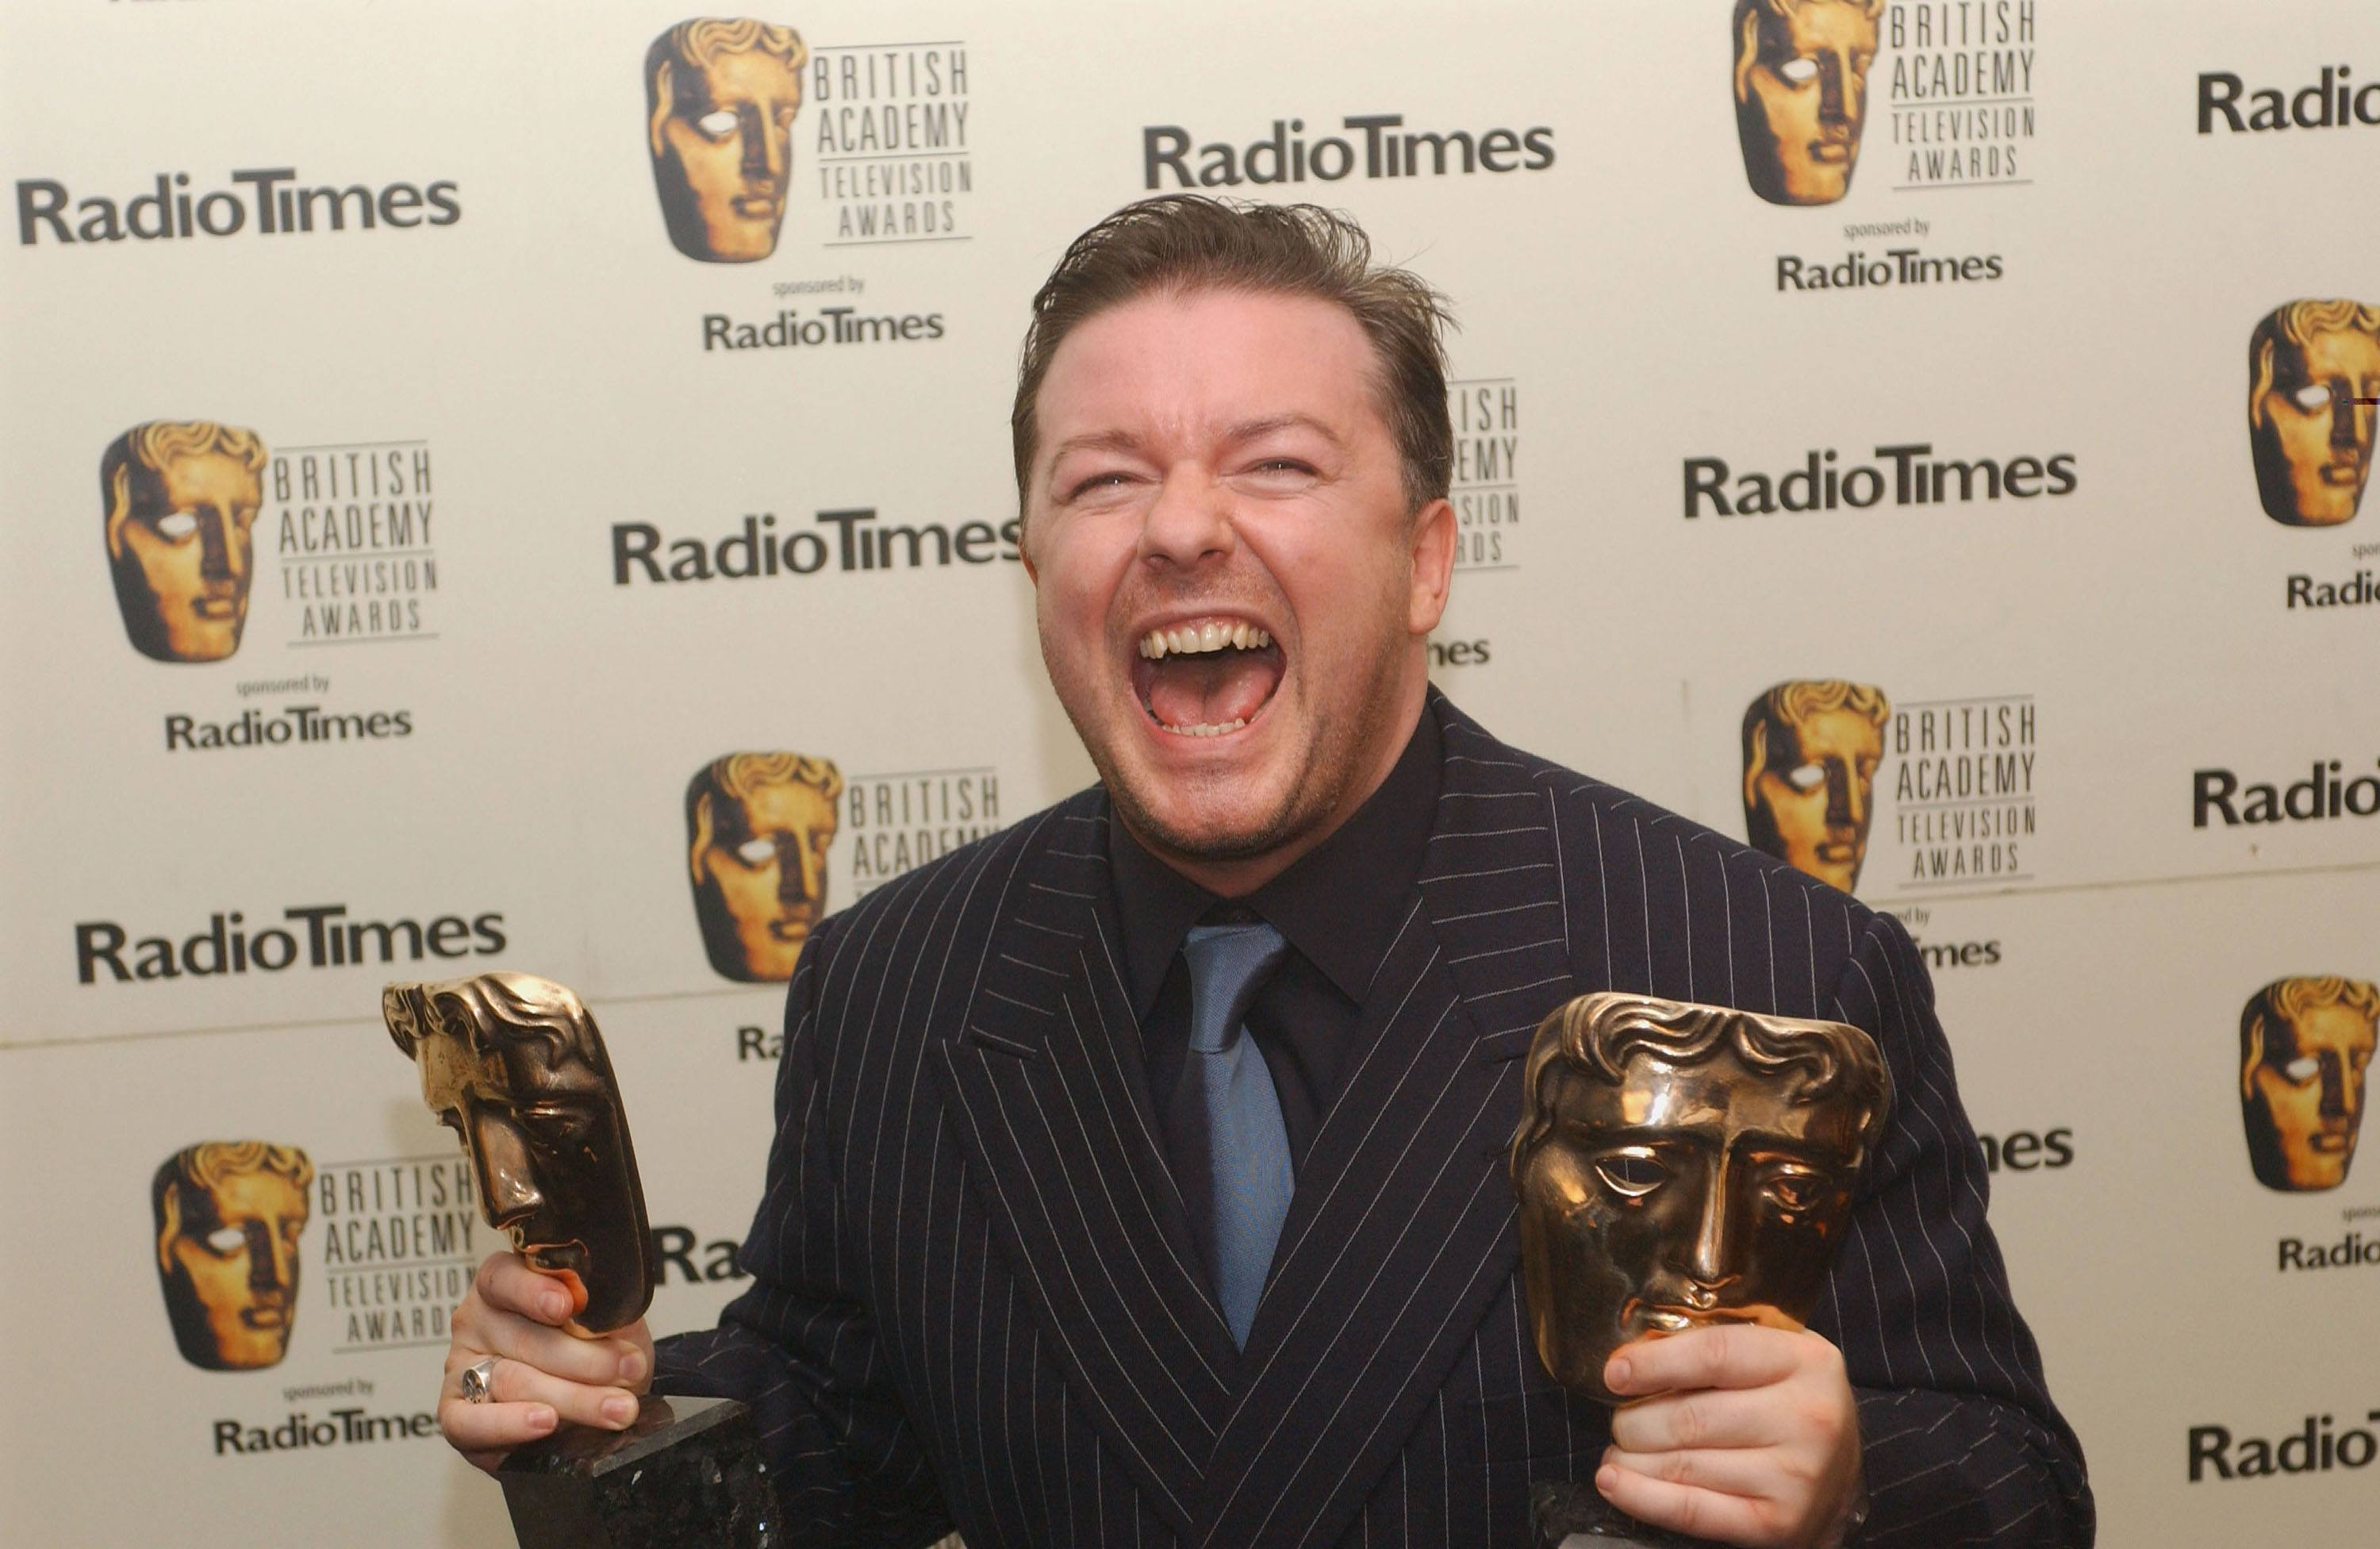 Ricky Gerves at the British Academy of Television Awards in 2004